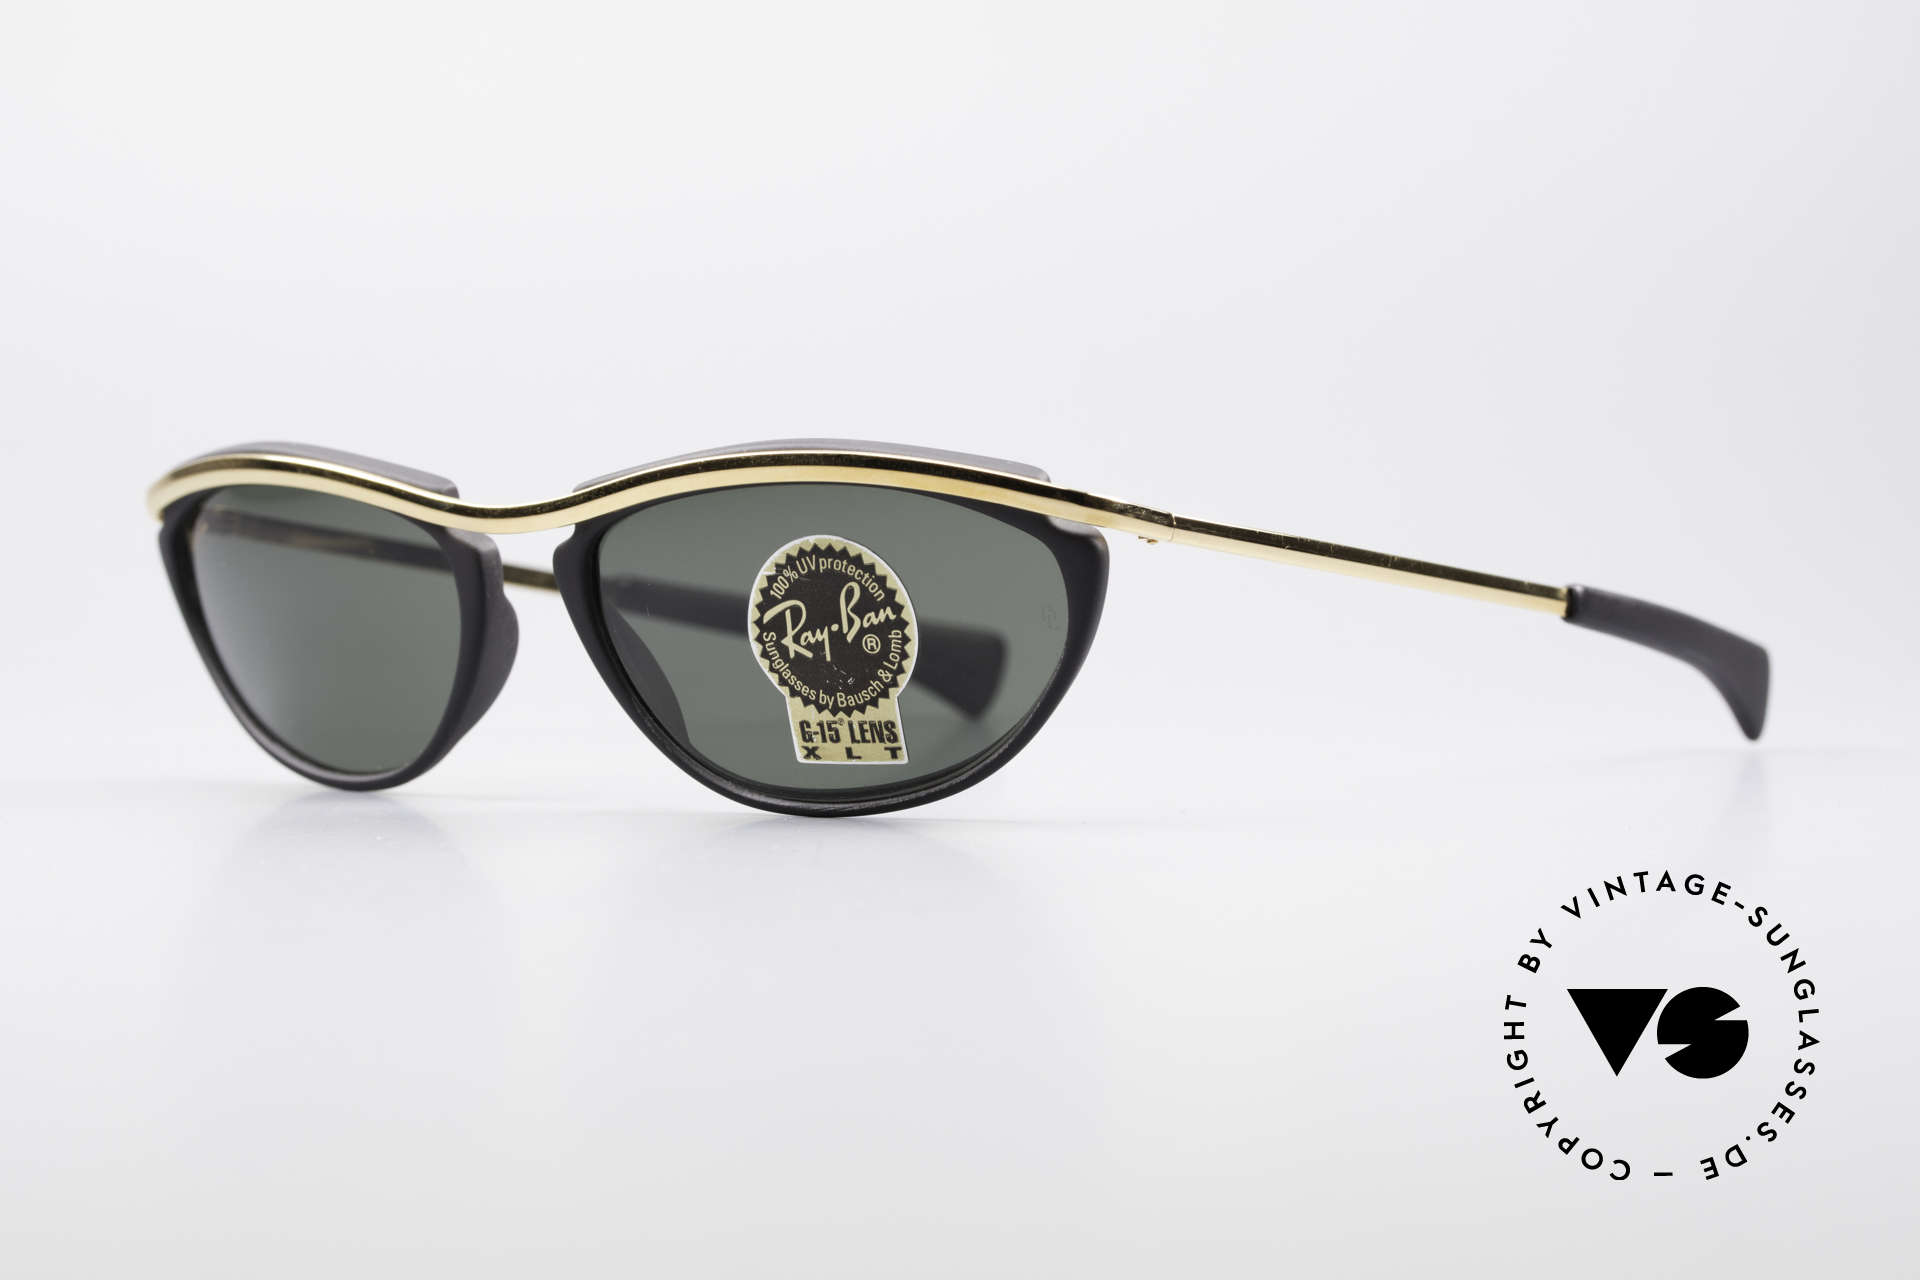 Ray Ban Olympian IV Authentic 90's B&L USA Shades, a vintage 'made in USA' ORIGINAL from the 90's, Made for Men and Women